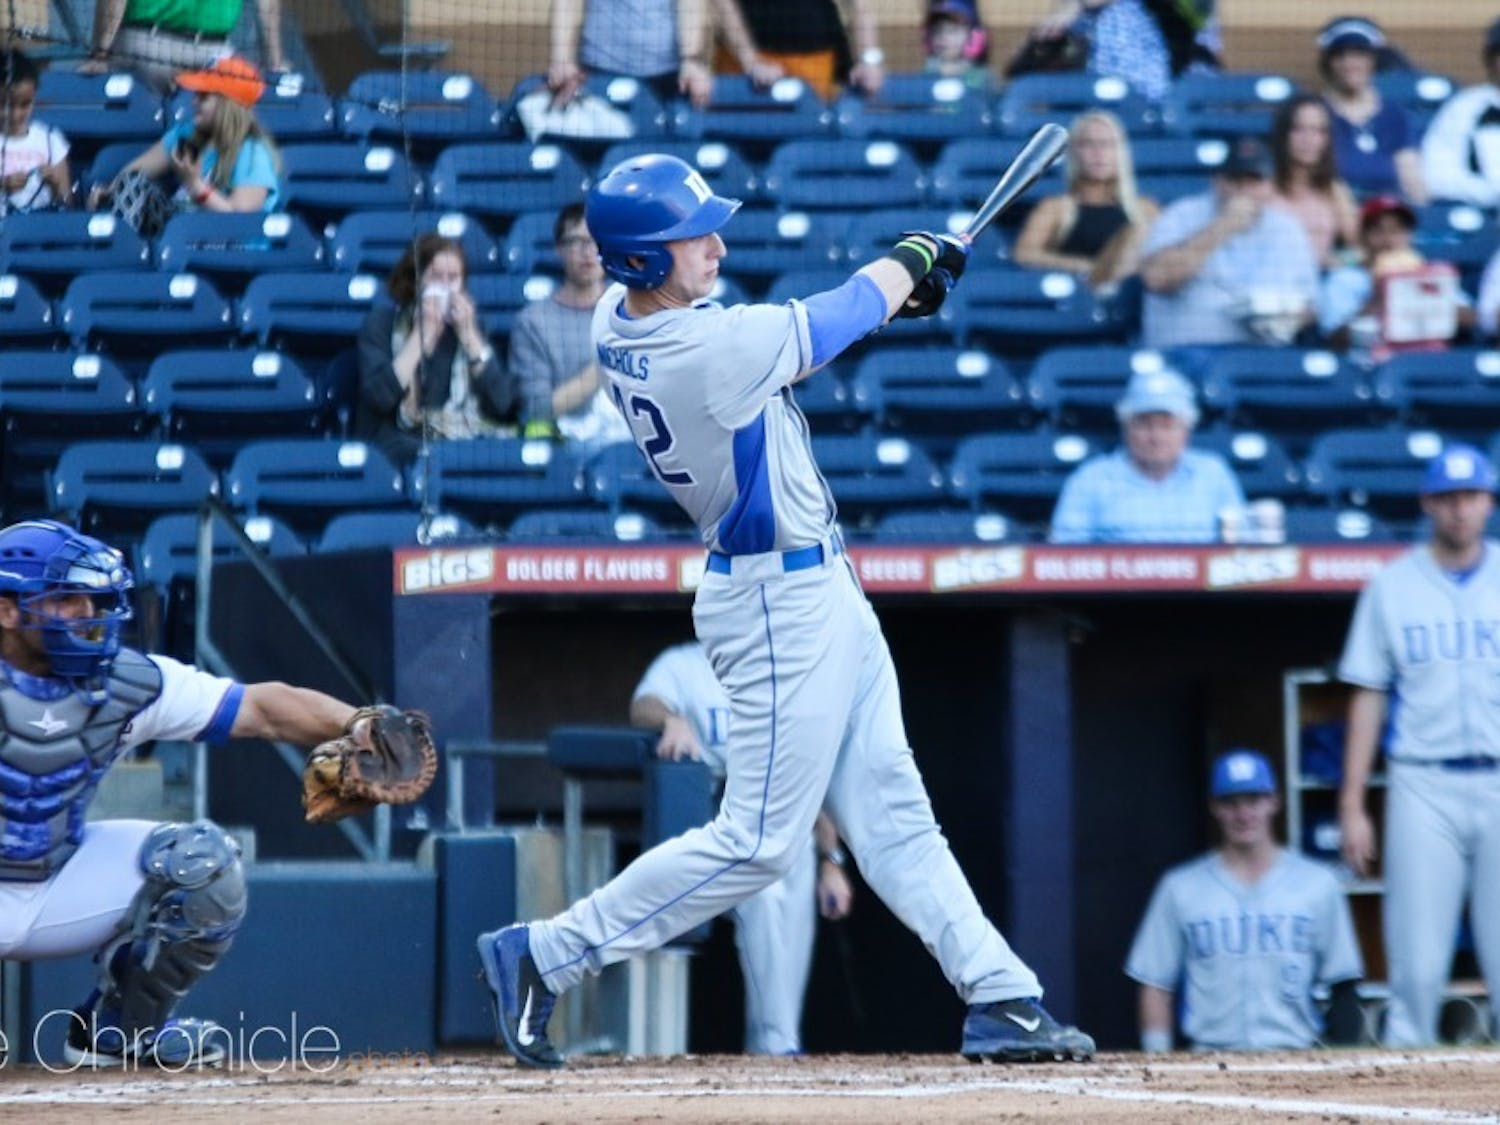 Erikson Nichols' three-run home run in the fourth inning gave Duke the lead for good Friday.